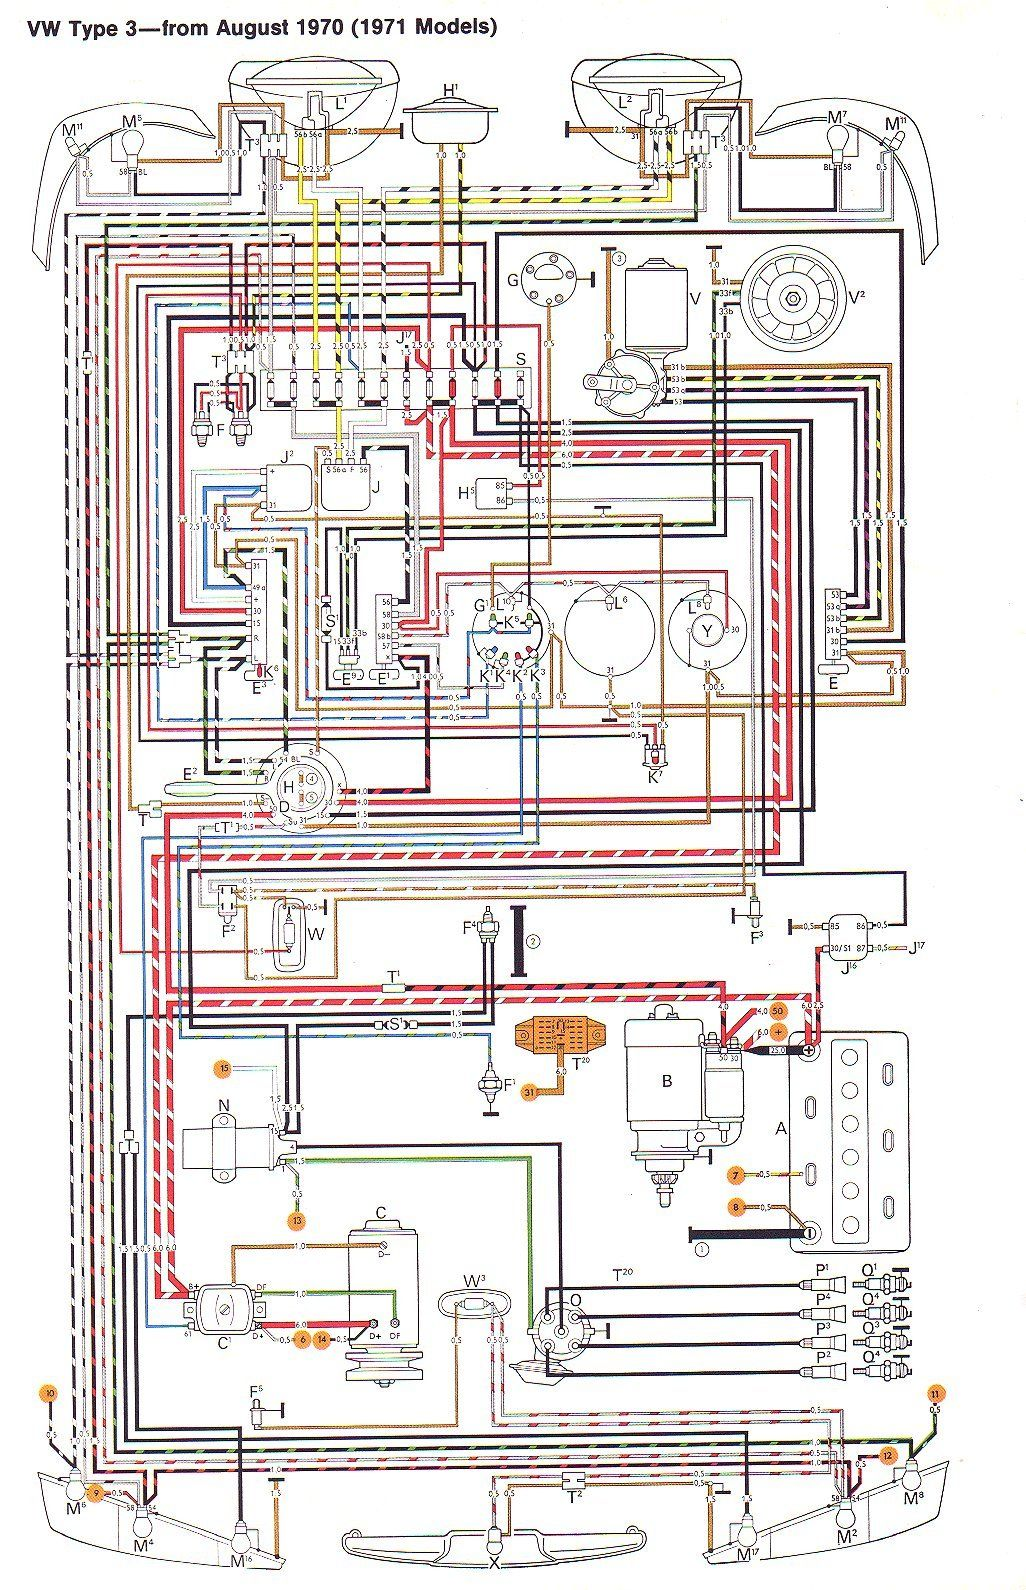 e0db58370f79a63d02d45f00cf63f44a 71 vw t3 wiring diagram ruthie pinterest volkswagen, engine vw mk1 wiring diagram at creativeand.co